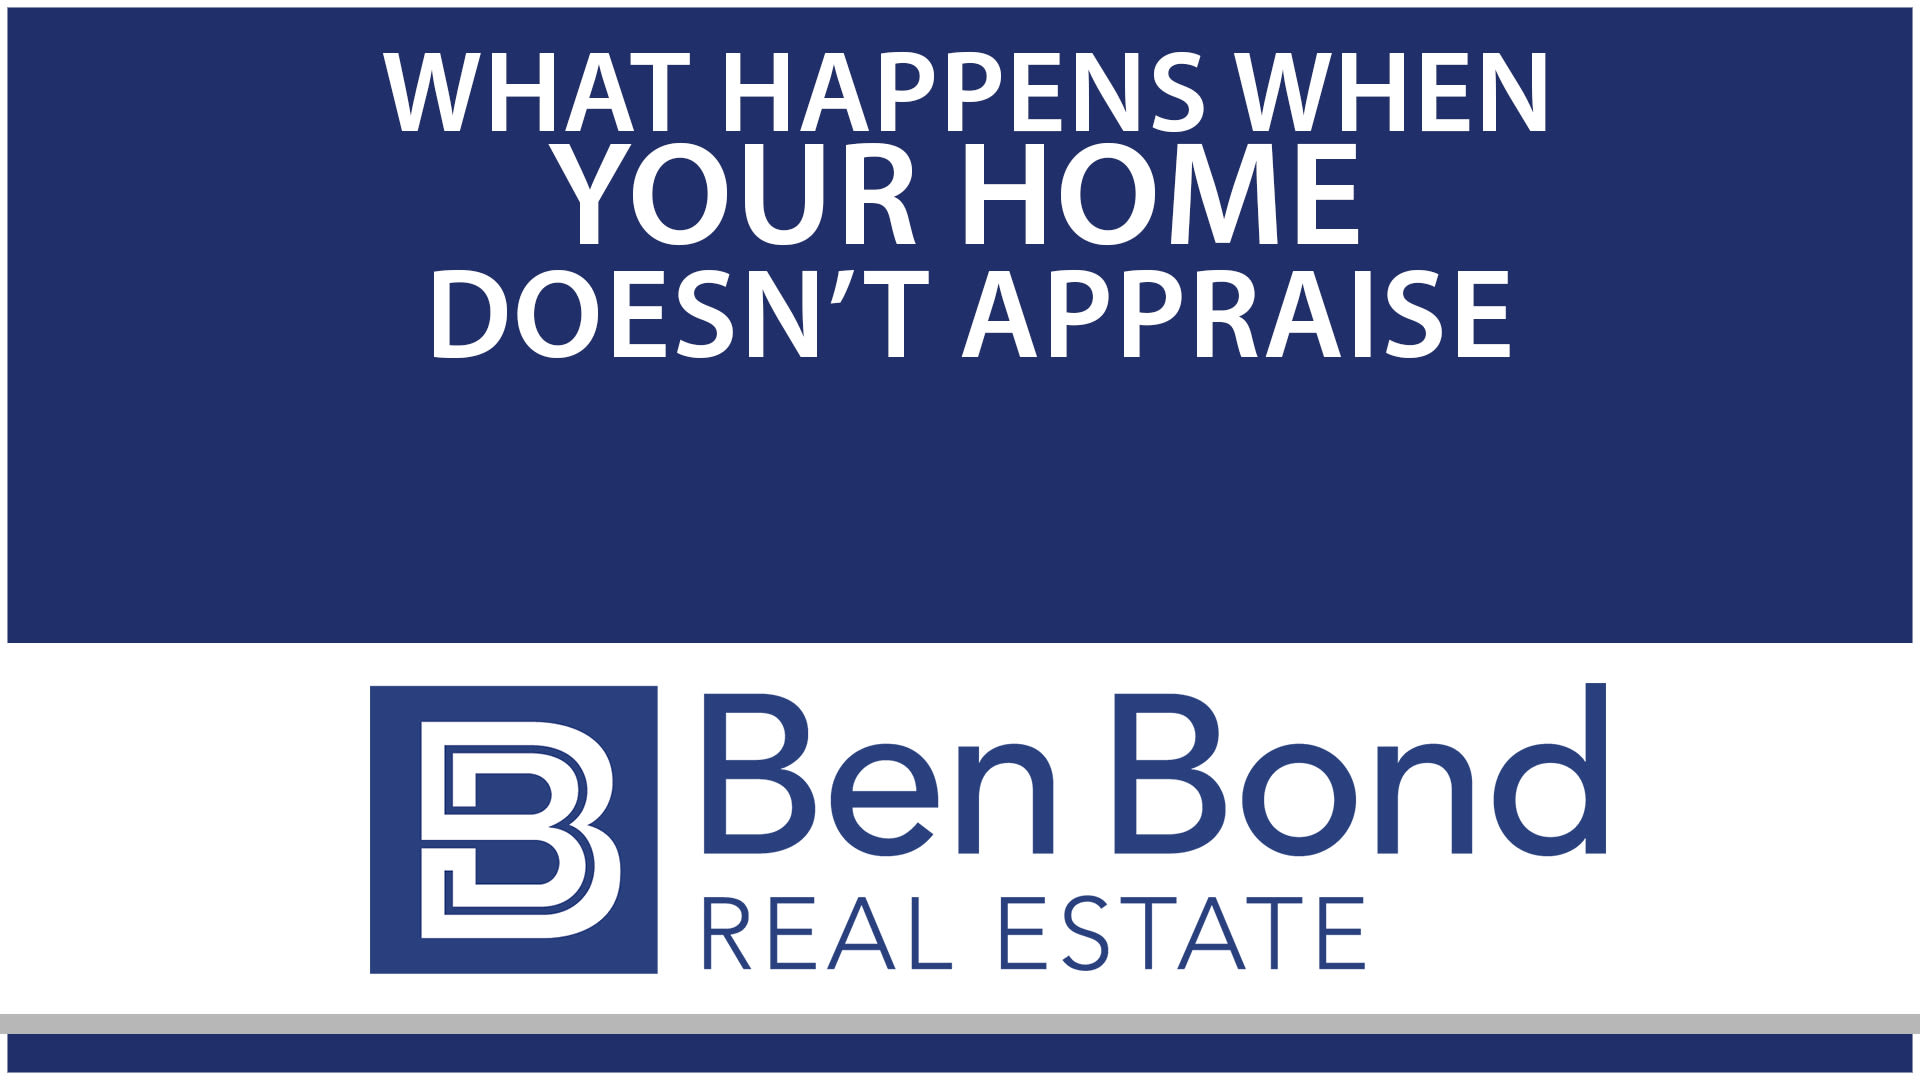 How to Deal With a Low Appraisal